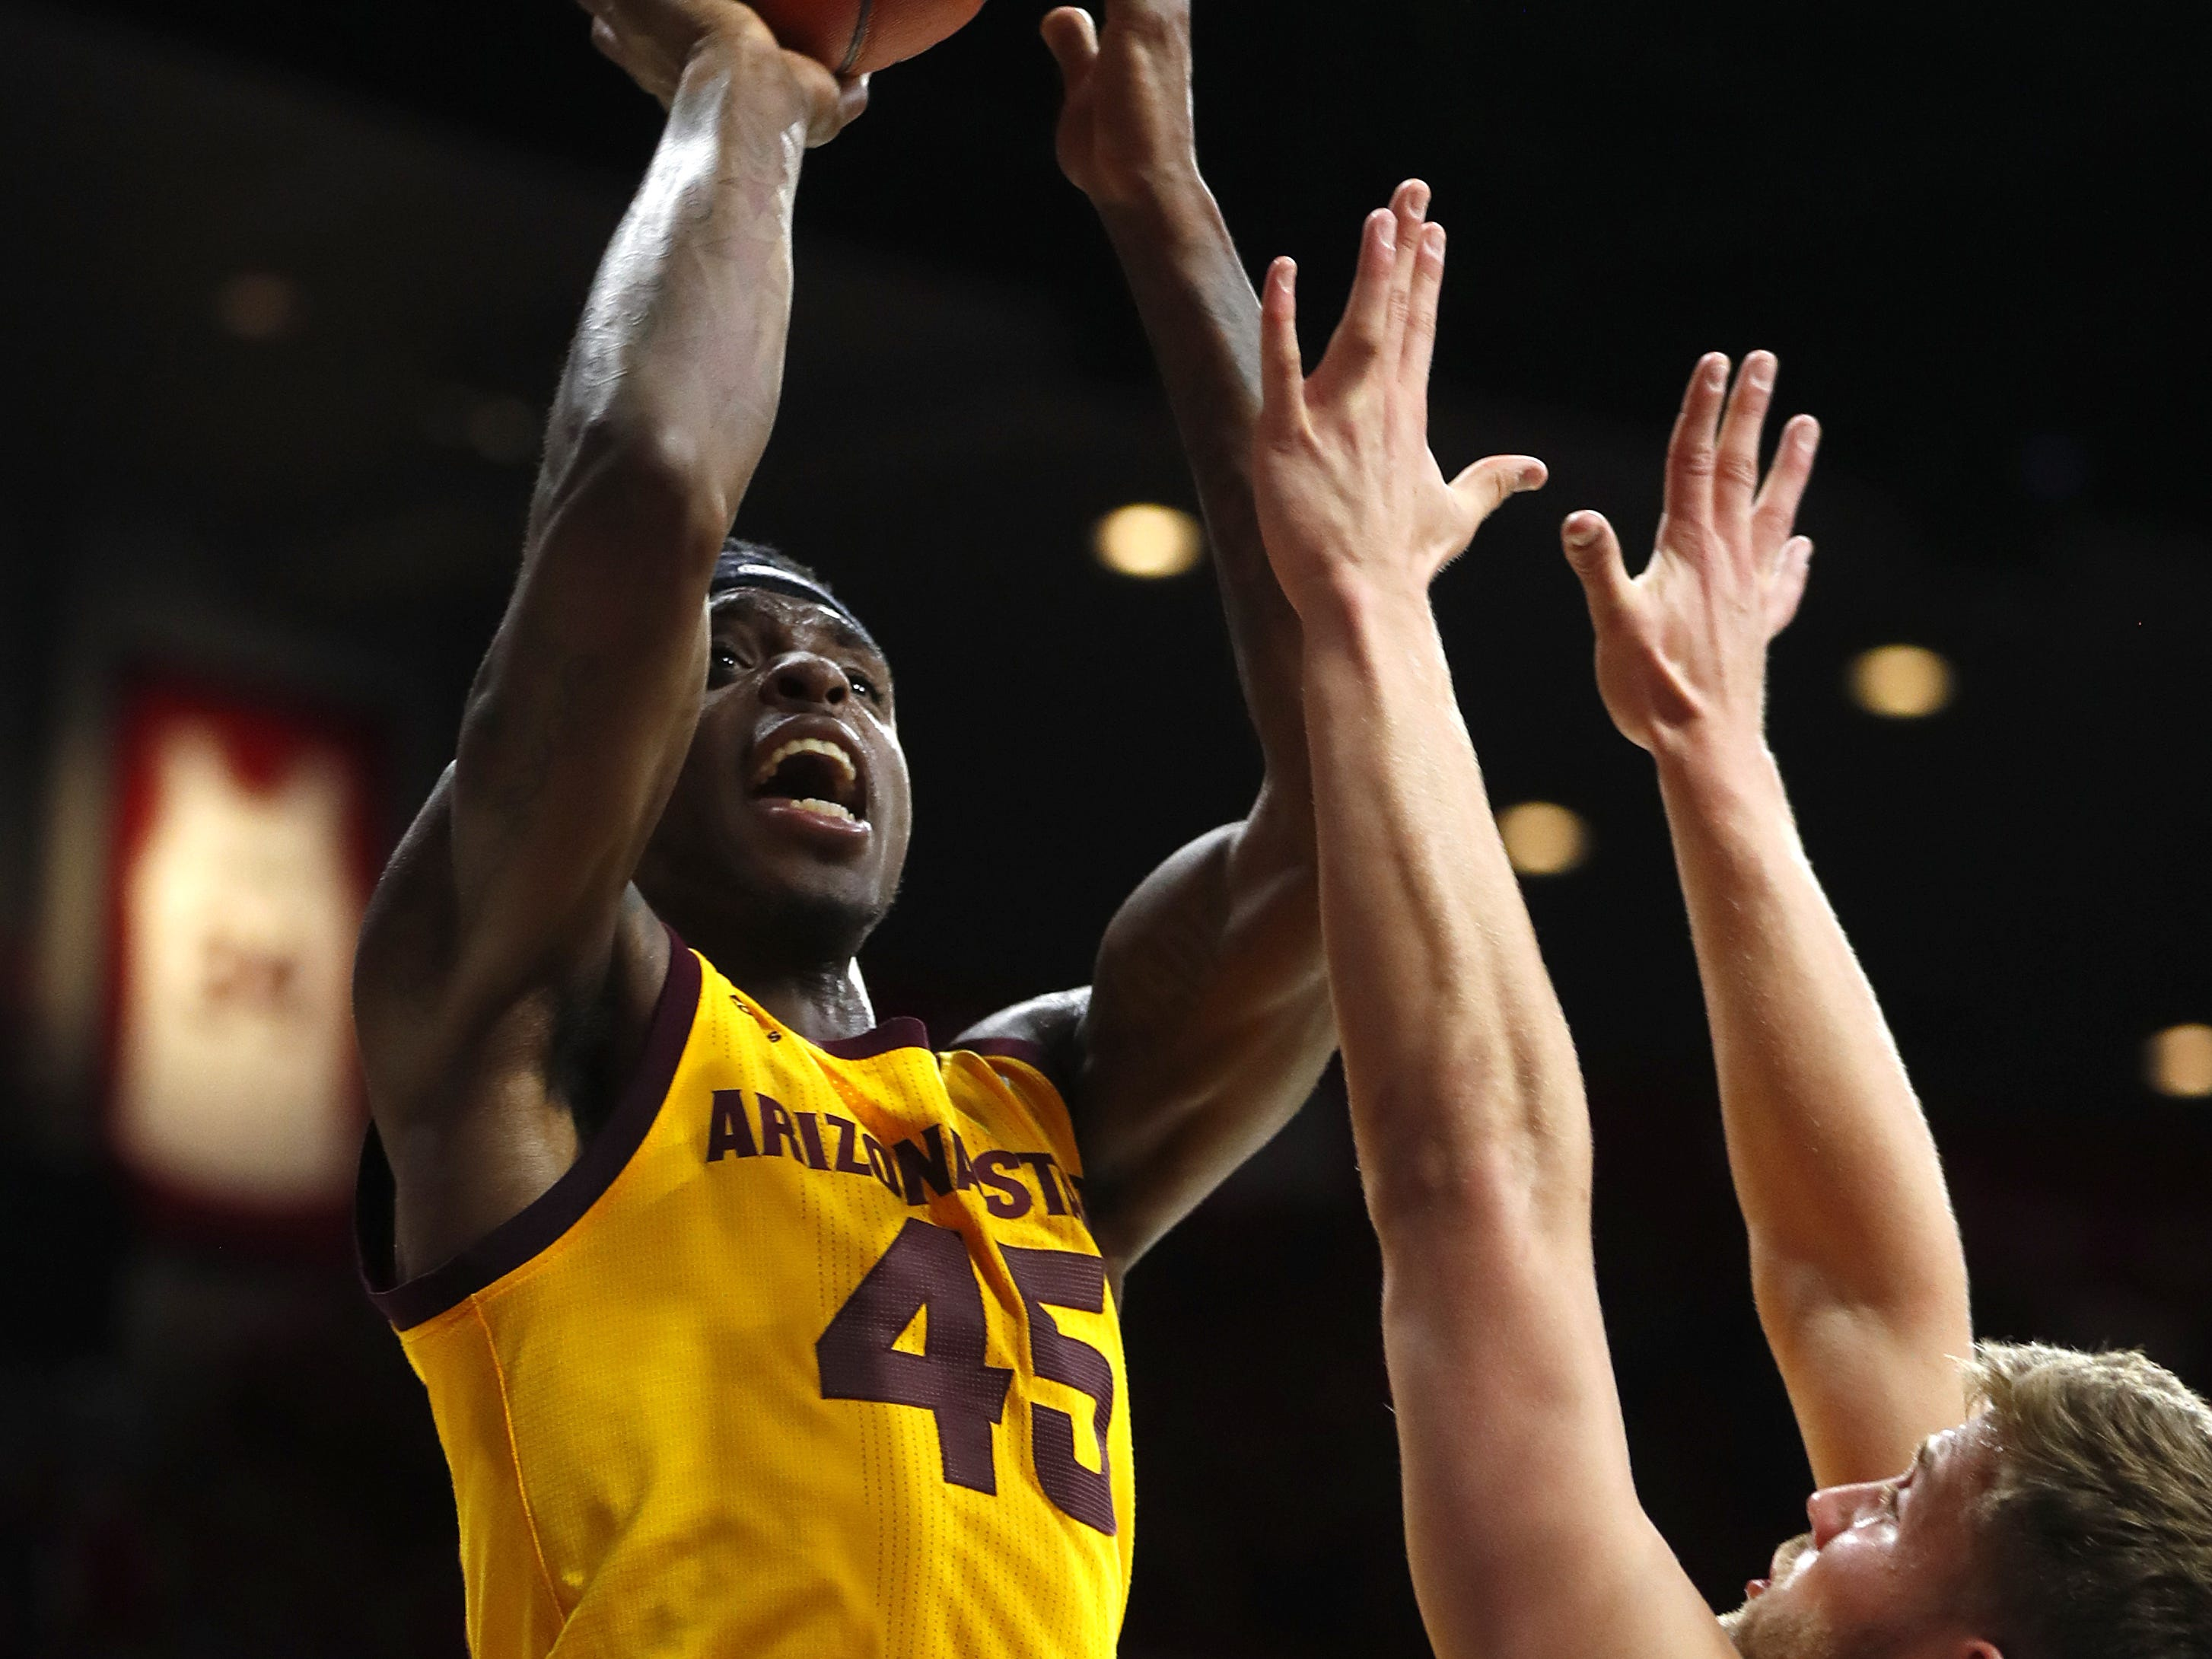 ASU's Zylan Cheatham (45) shoots over Arizona's Ryan Luther (10) during the second half at the McKale Memorial Center in Tucson, Ariz. on March 9, 2019.